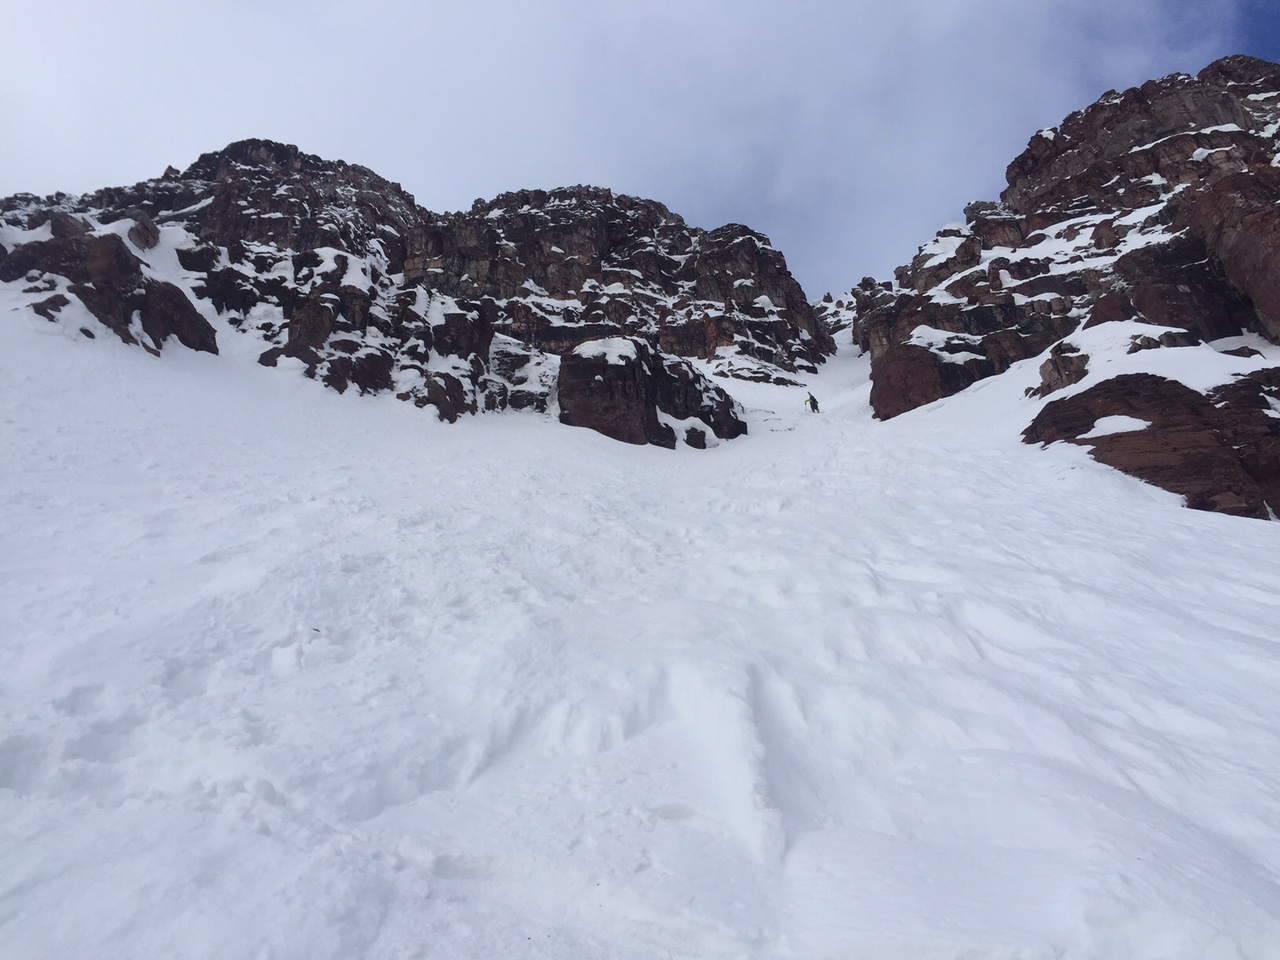 Ascending to the couloir.